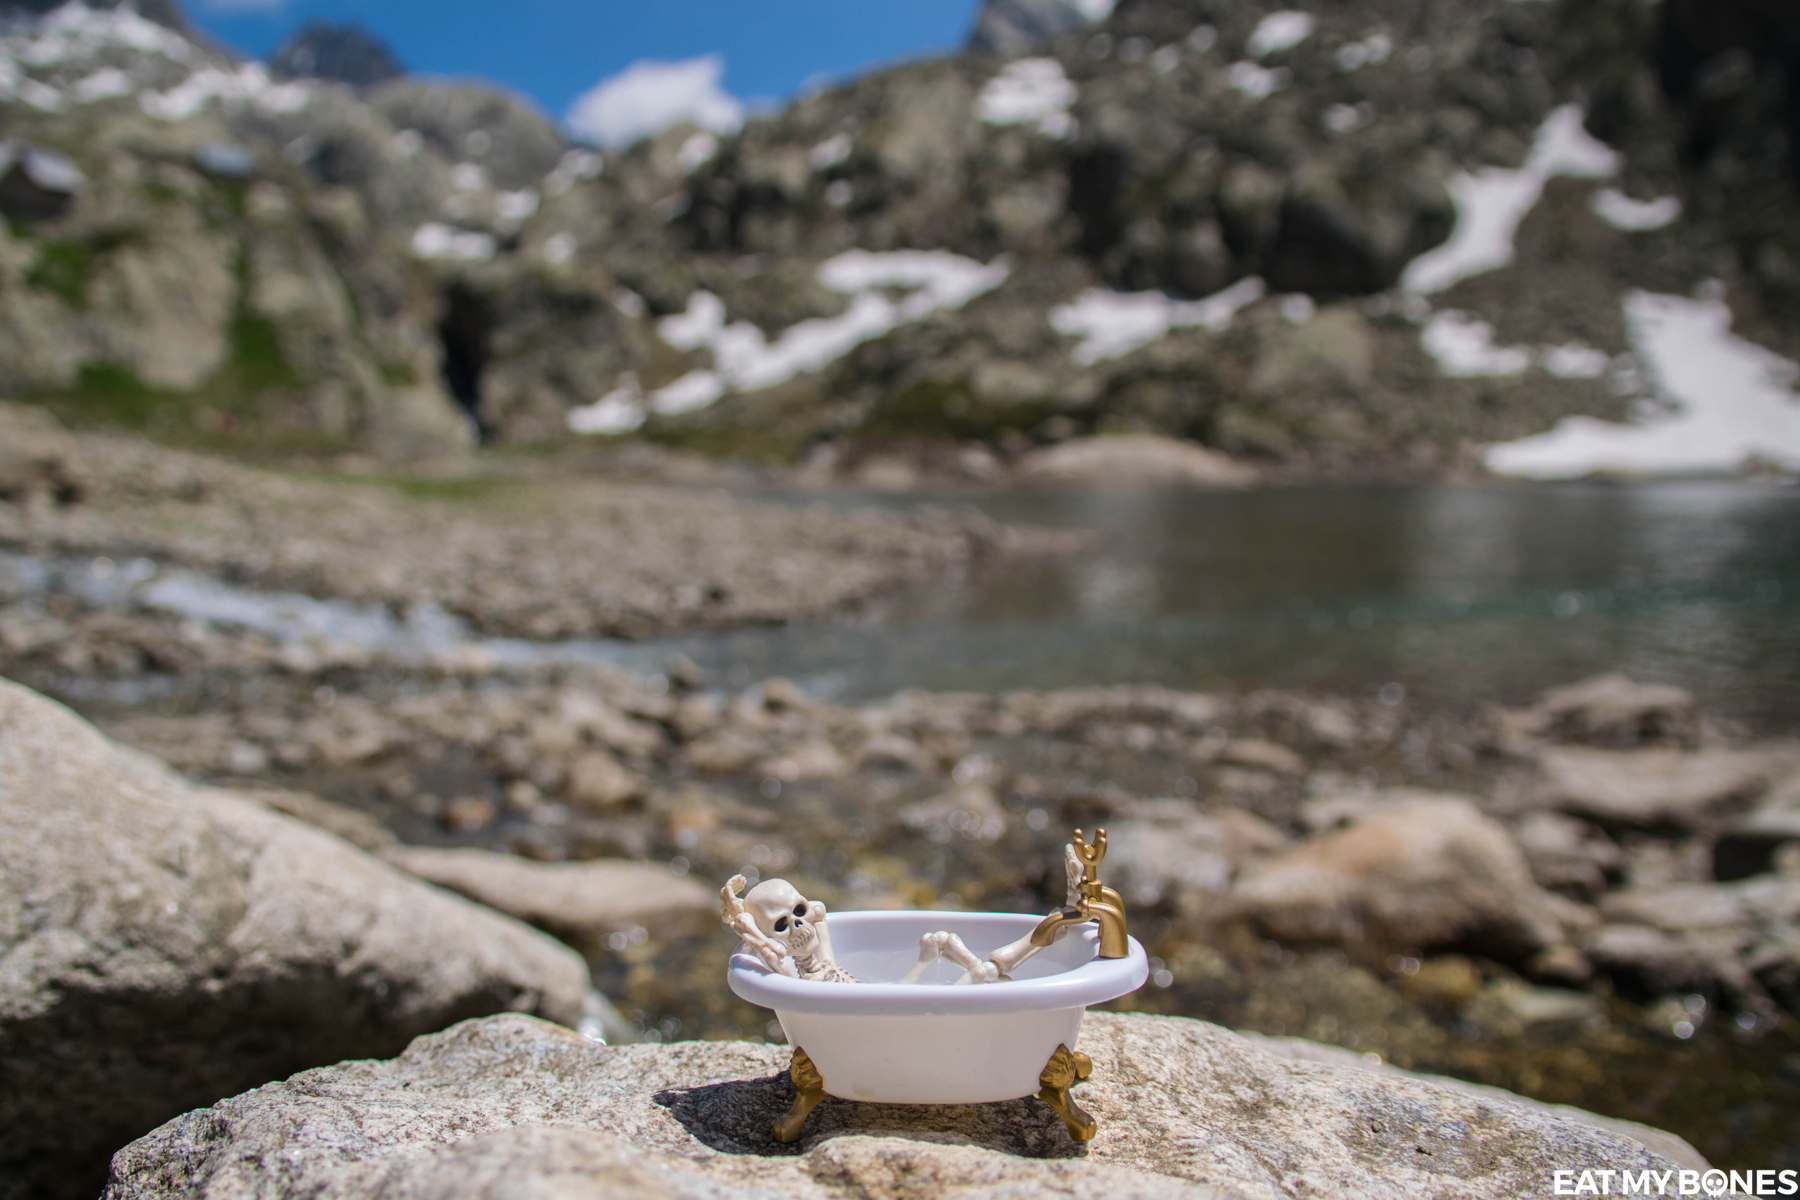 Bath in the Mercantour - Pose Skeleton - Toy photography - Miniature - Eat my Bones